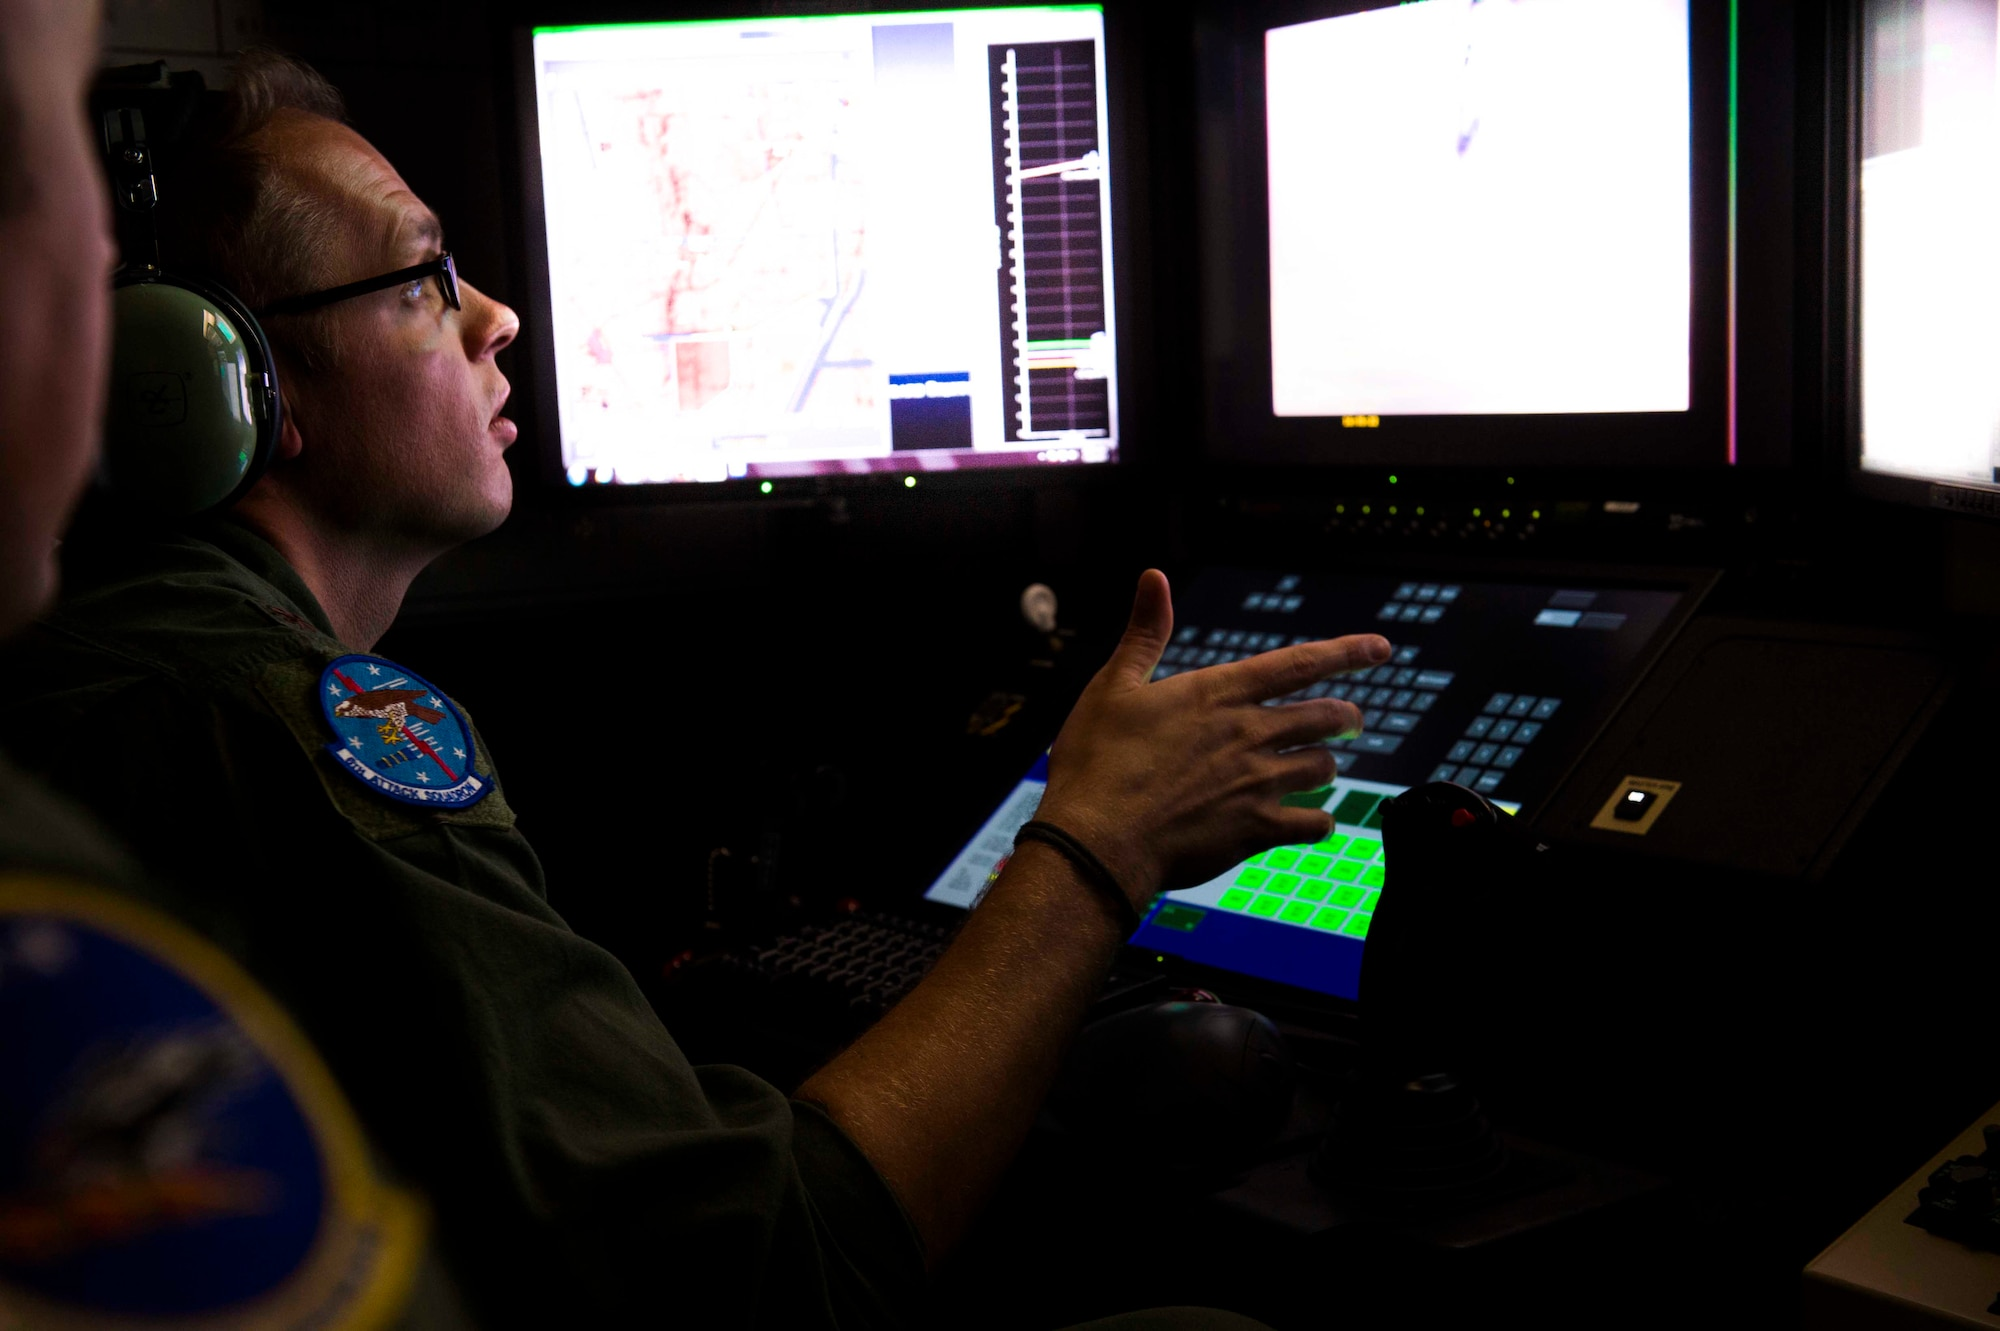 Maj. Jay, MQ-9 pilot with the 6th Attack Squadron, pilots the squadron's first Block 5 MQ-9 Reaper from inside a new Block 30 ground control station at Holloman Air Force Base, N.M., July 10, 2017. Holloman started flying the new Block 5 and Block 30 technology to ease the transition that student pilots and sensor operators will experience when joining a combat unit. (U.S. Air Force photo by Senior Airman Chase Cannon)